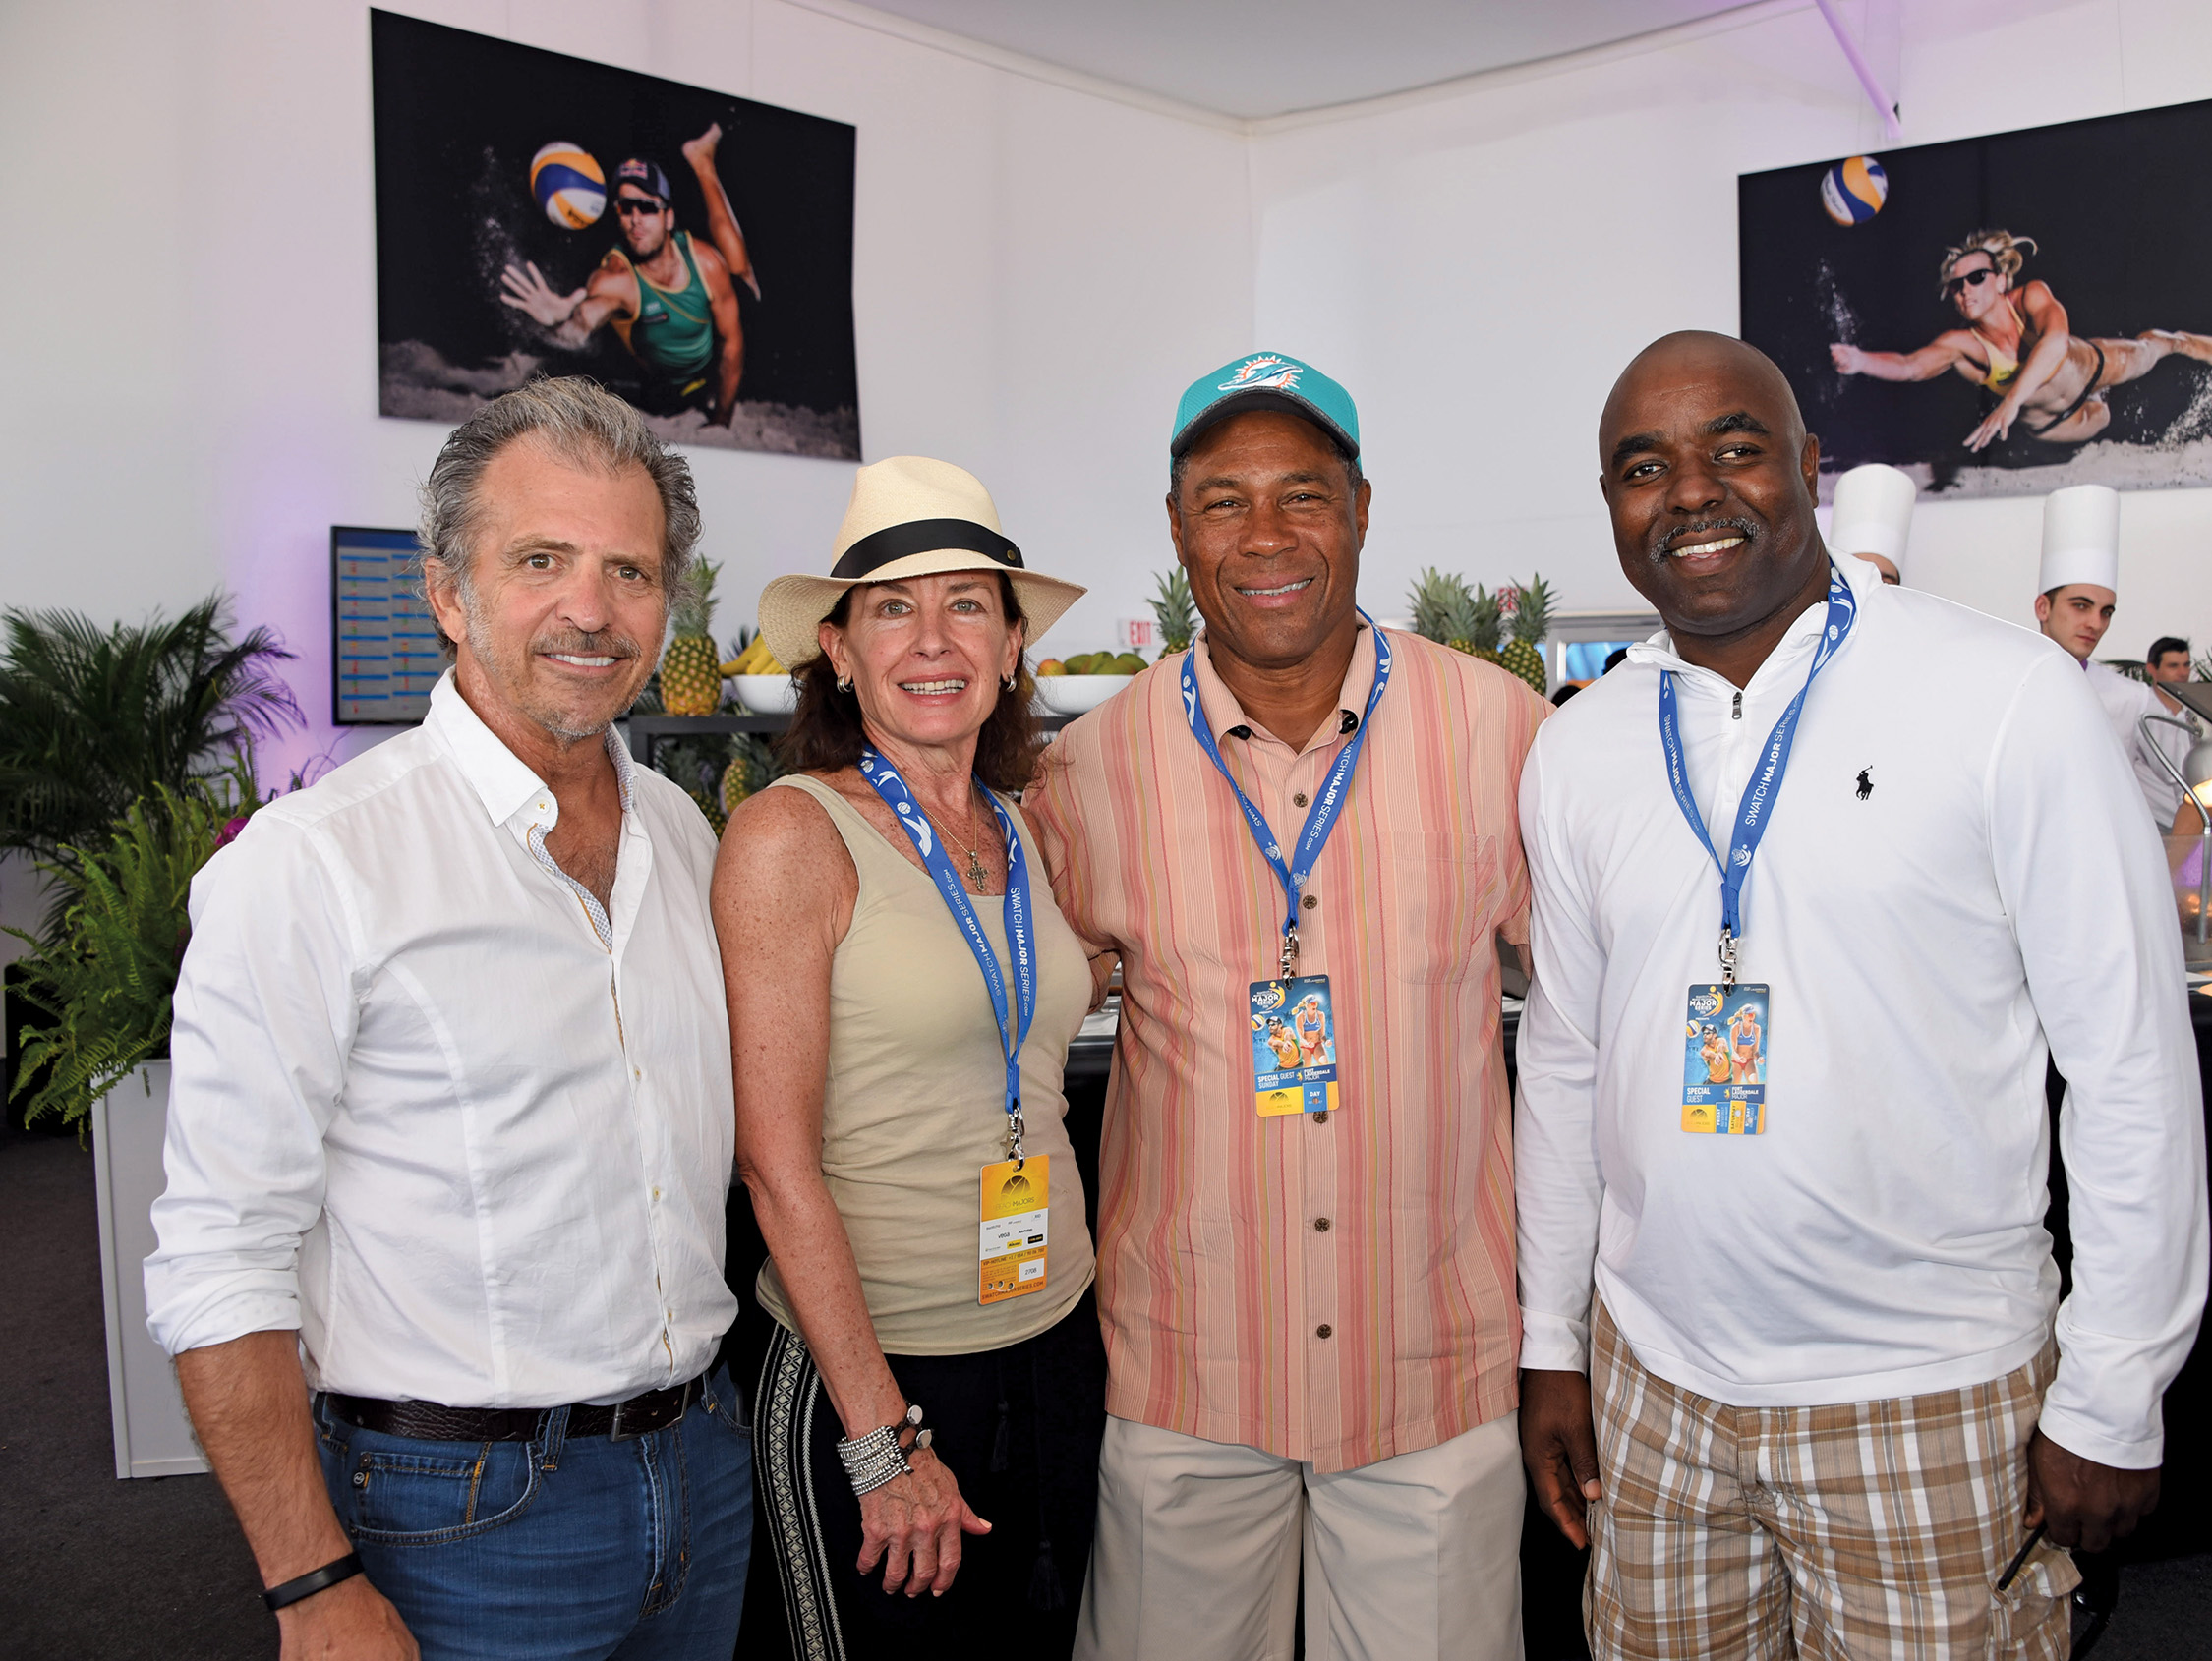 Commissioner-Bob-McKinzie-Michele-Eve-Sandberg-The-Seen-Swatch-Major-Series-Beach-Volleyball-FIVB-Olympians-Venice-Magazine-Fort-Lauderdale-Beach